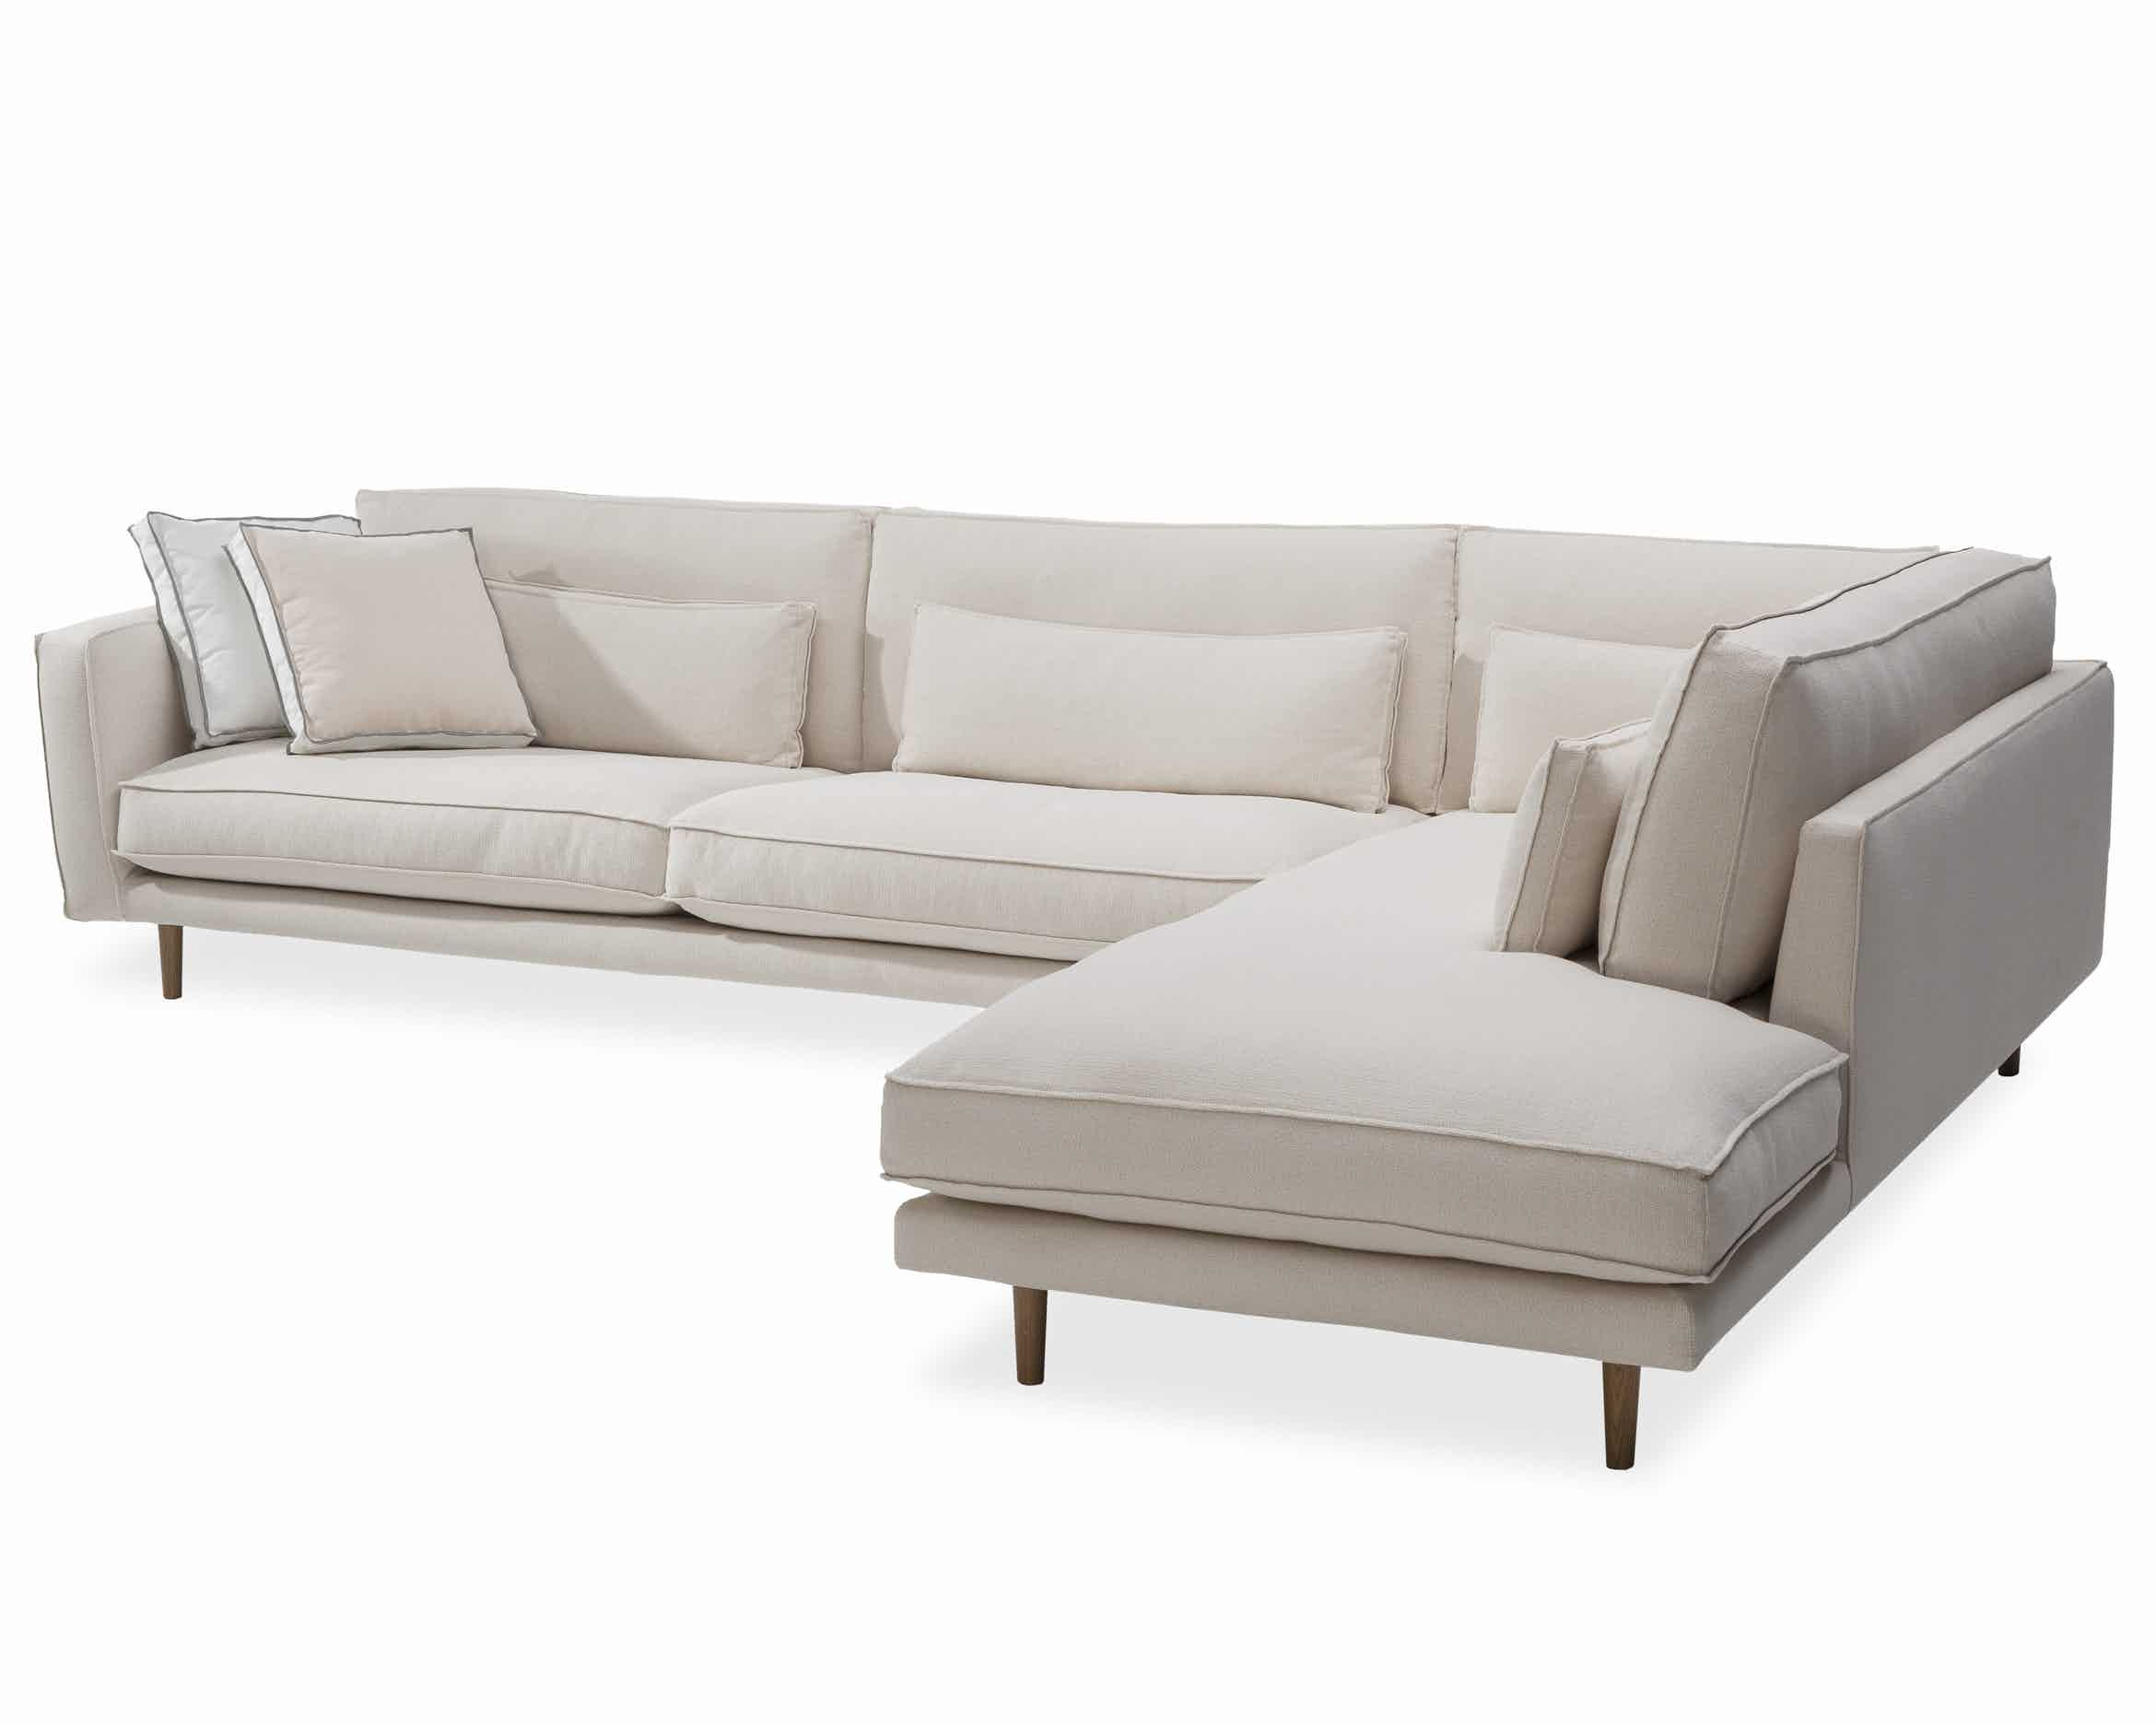 Linteloo-pleasure-sofa-haute-living